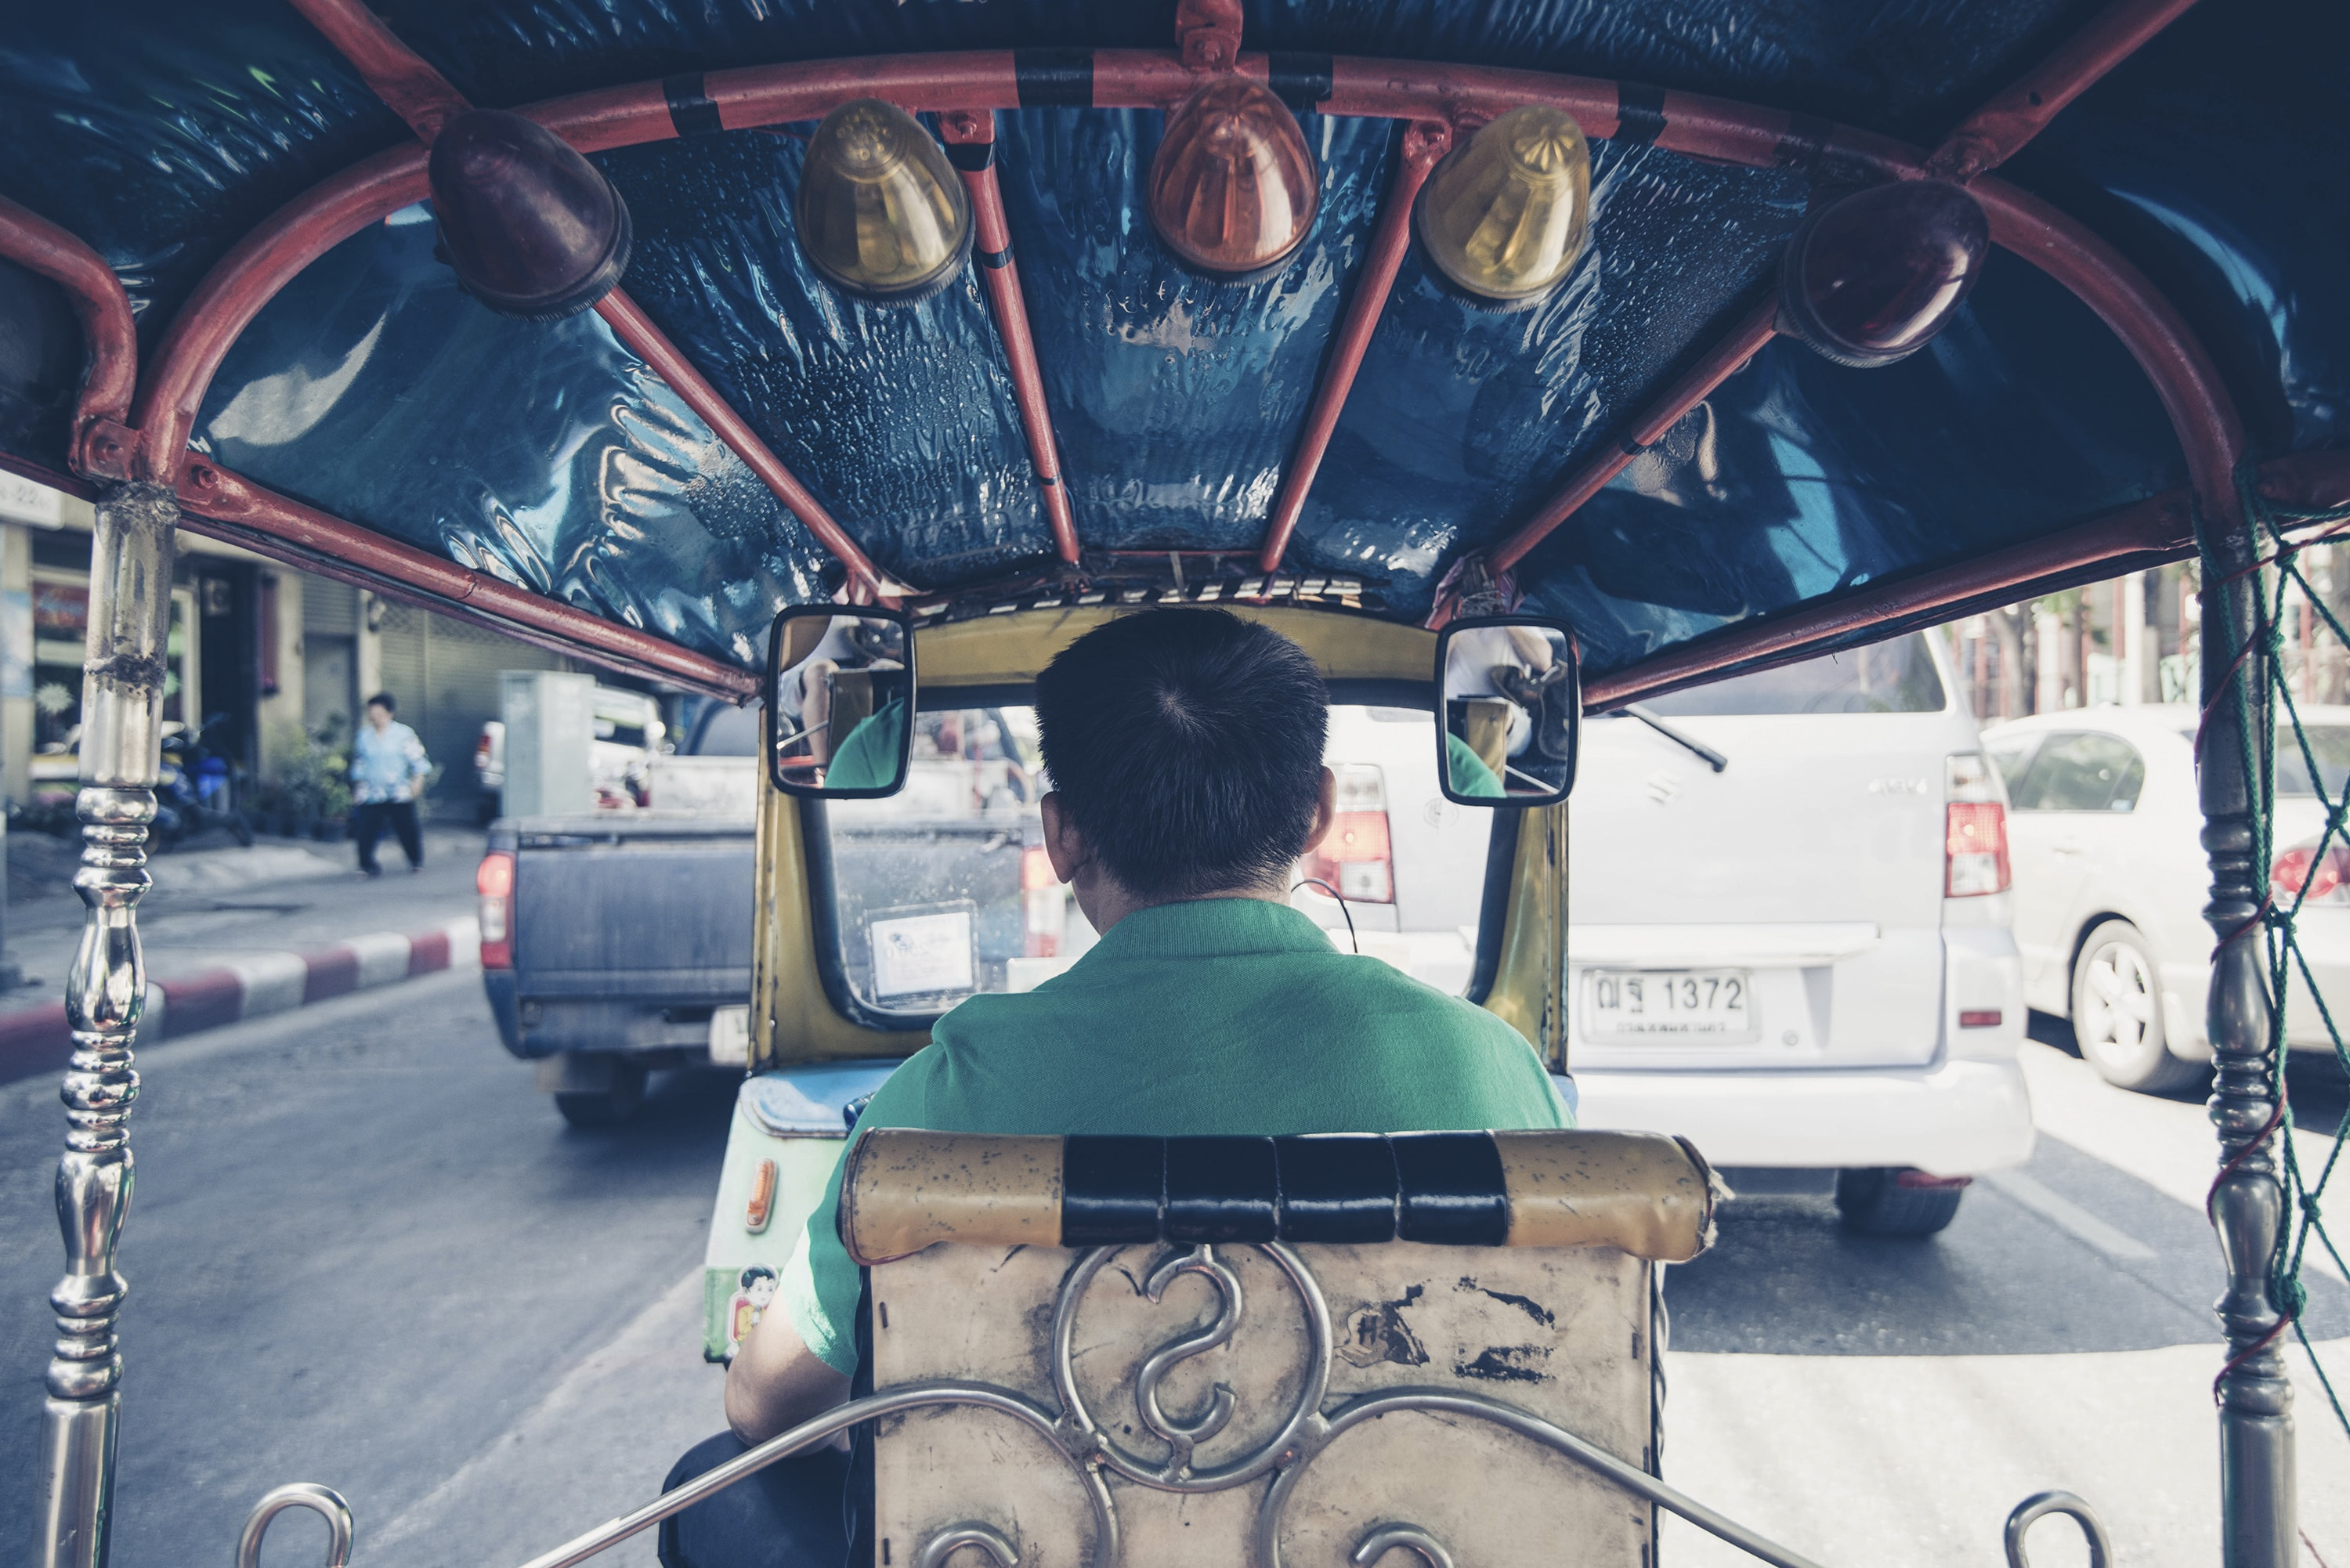 A view from the back seat of an auto rickshaw driving in the traffic